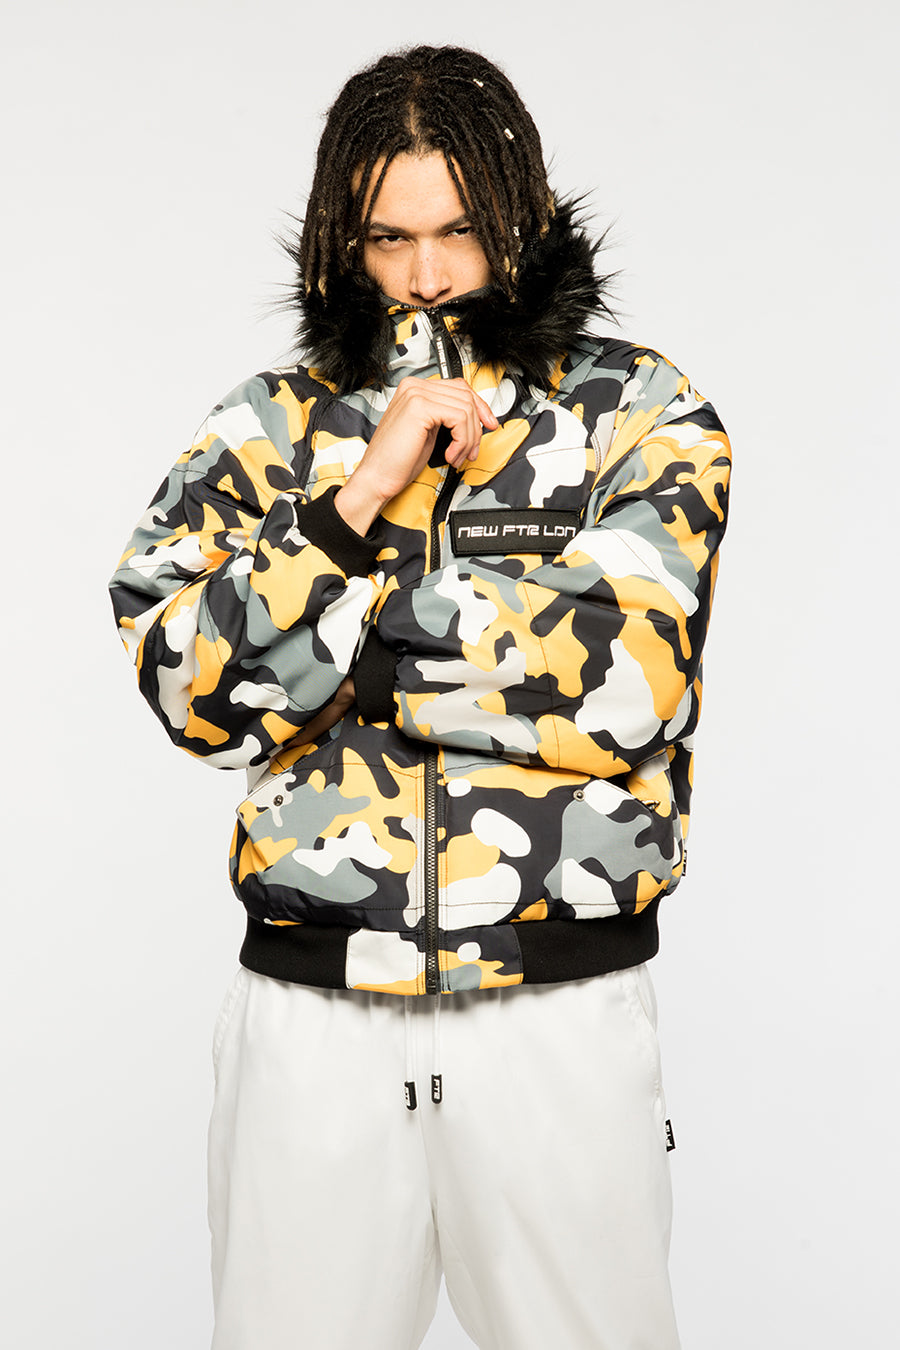 new_future_london_fur_hood_bomber_camo_yellow-1.jpg